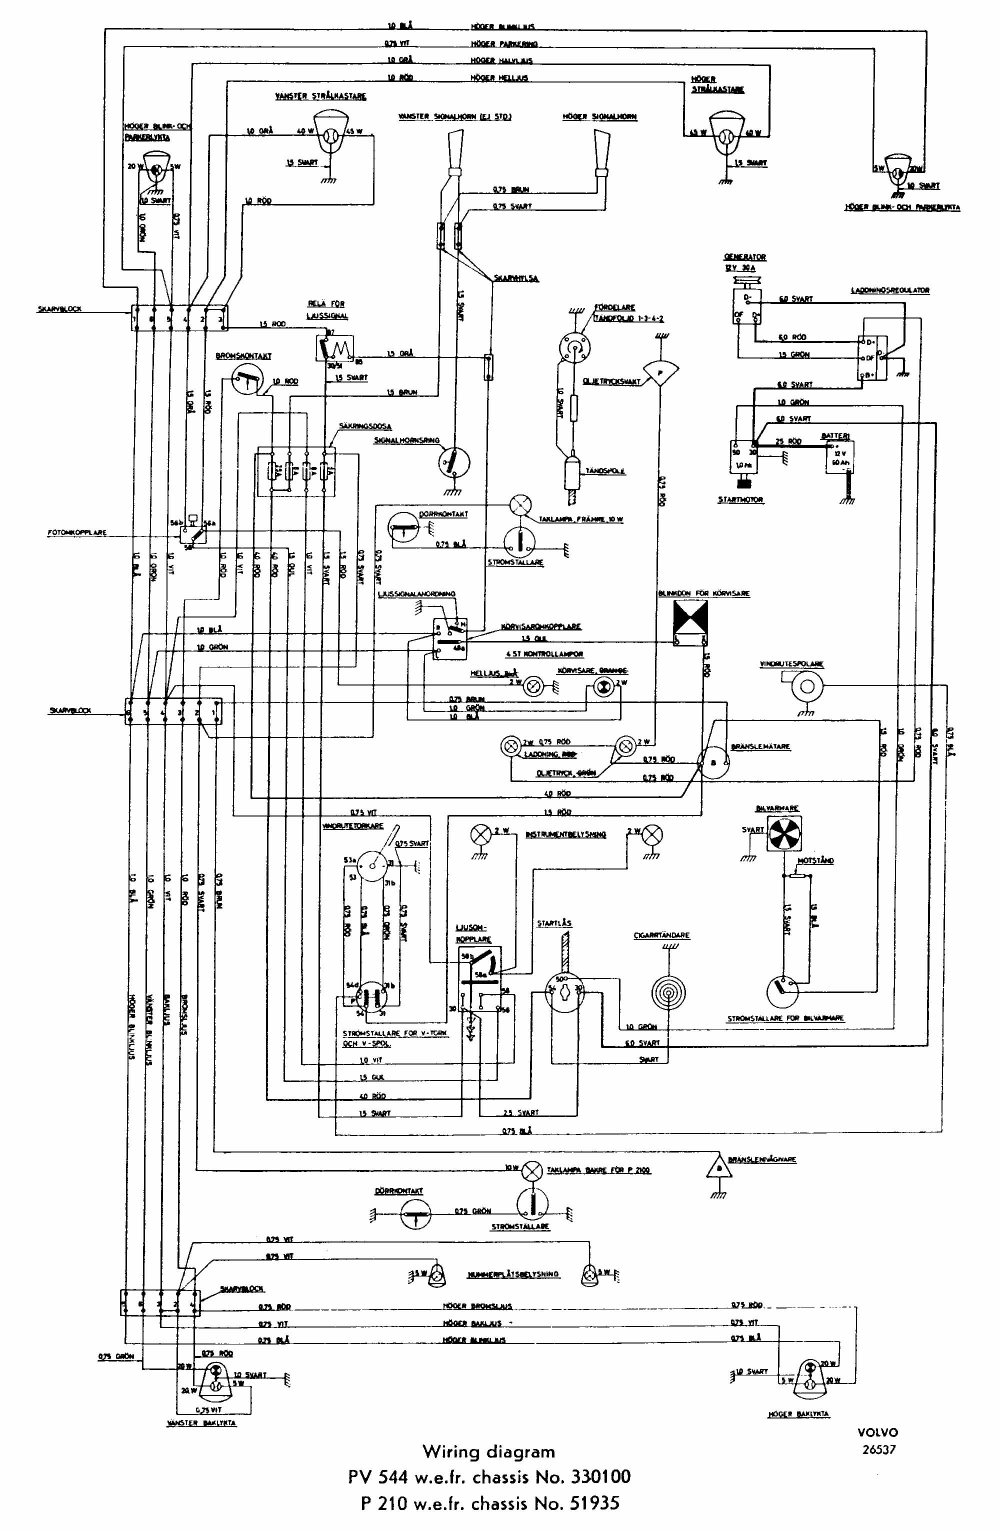 medium resolution of volvo pv544 wiring diagram wiring diagram notevolvo pv544 wiring diagram 3